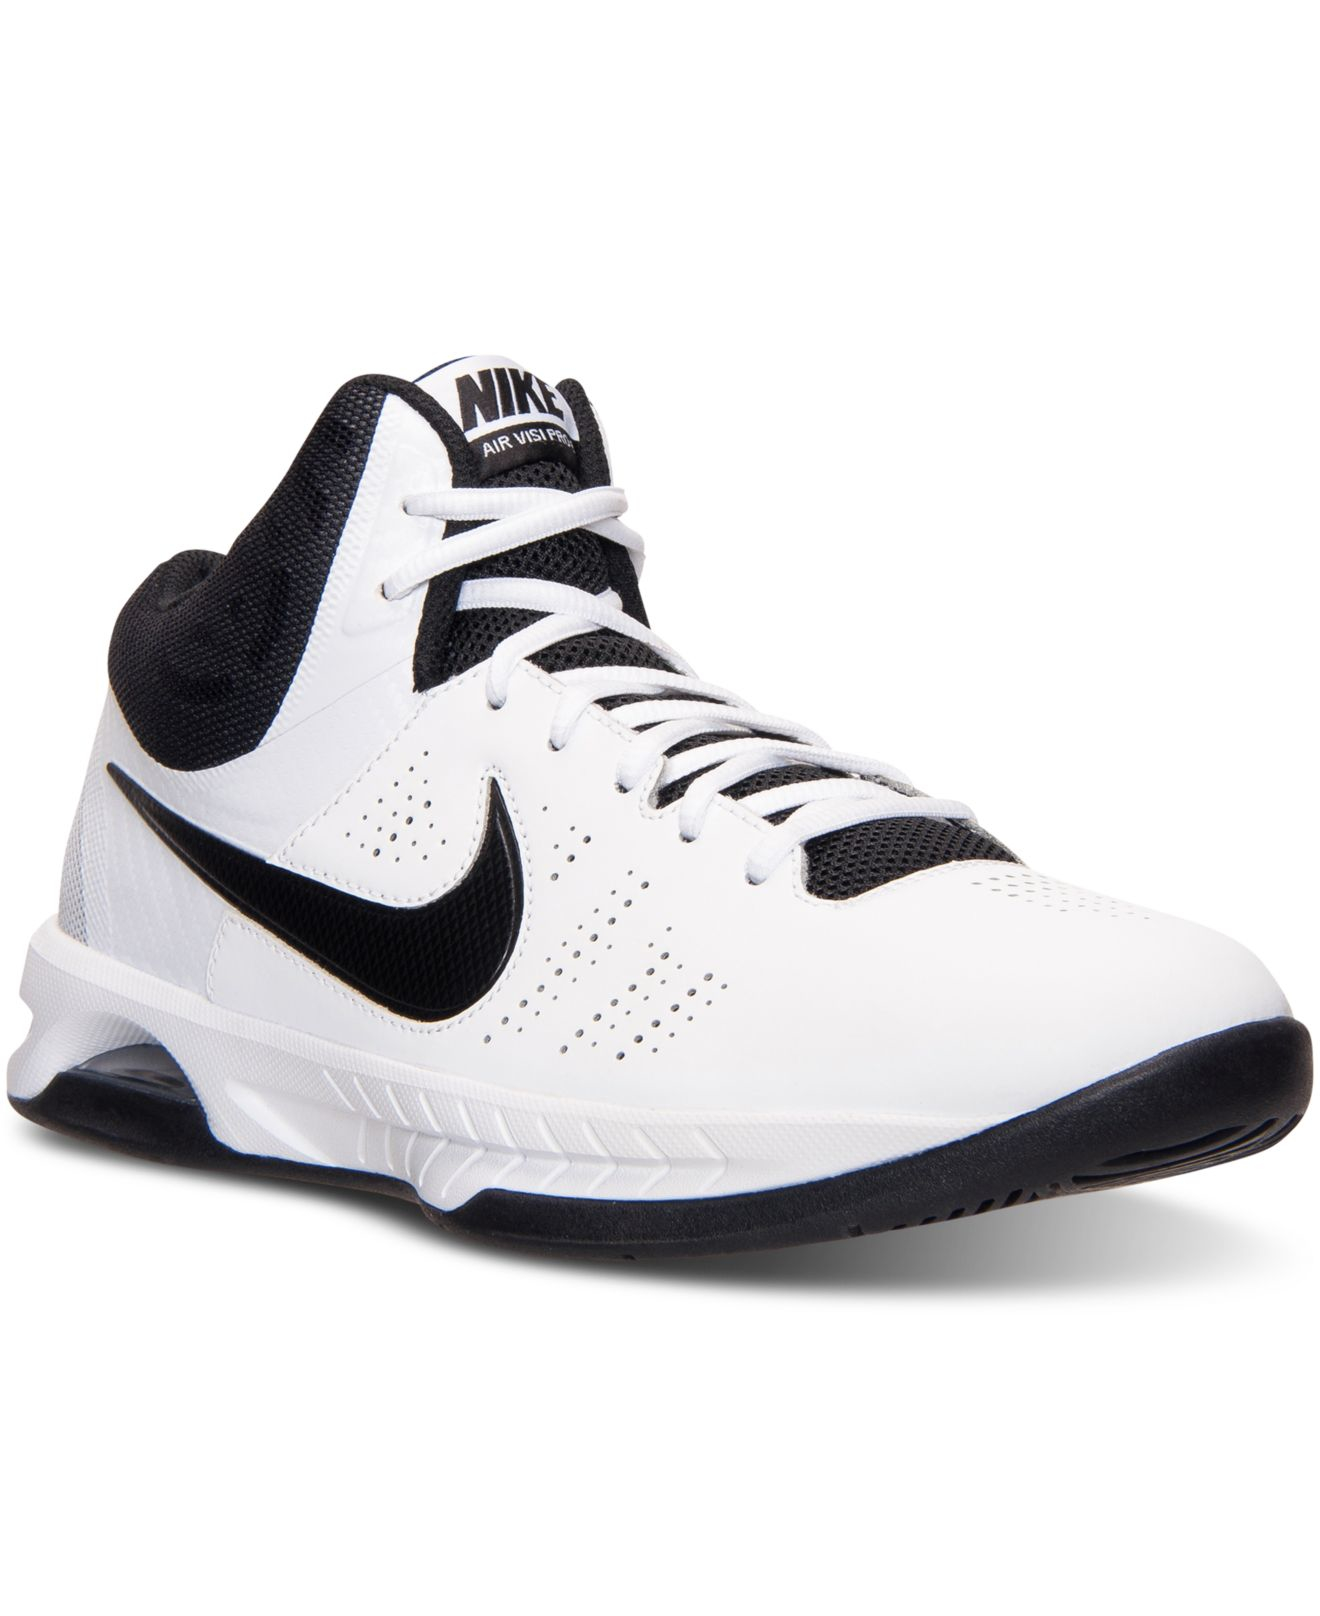 526cee70b0f ... Nike Mens Air Visi Pro Vi Basketball Sneakers From Finish Li ...